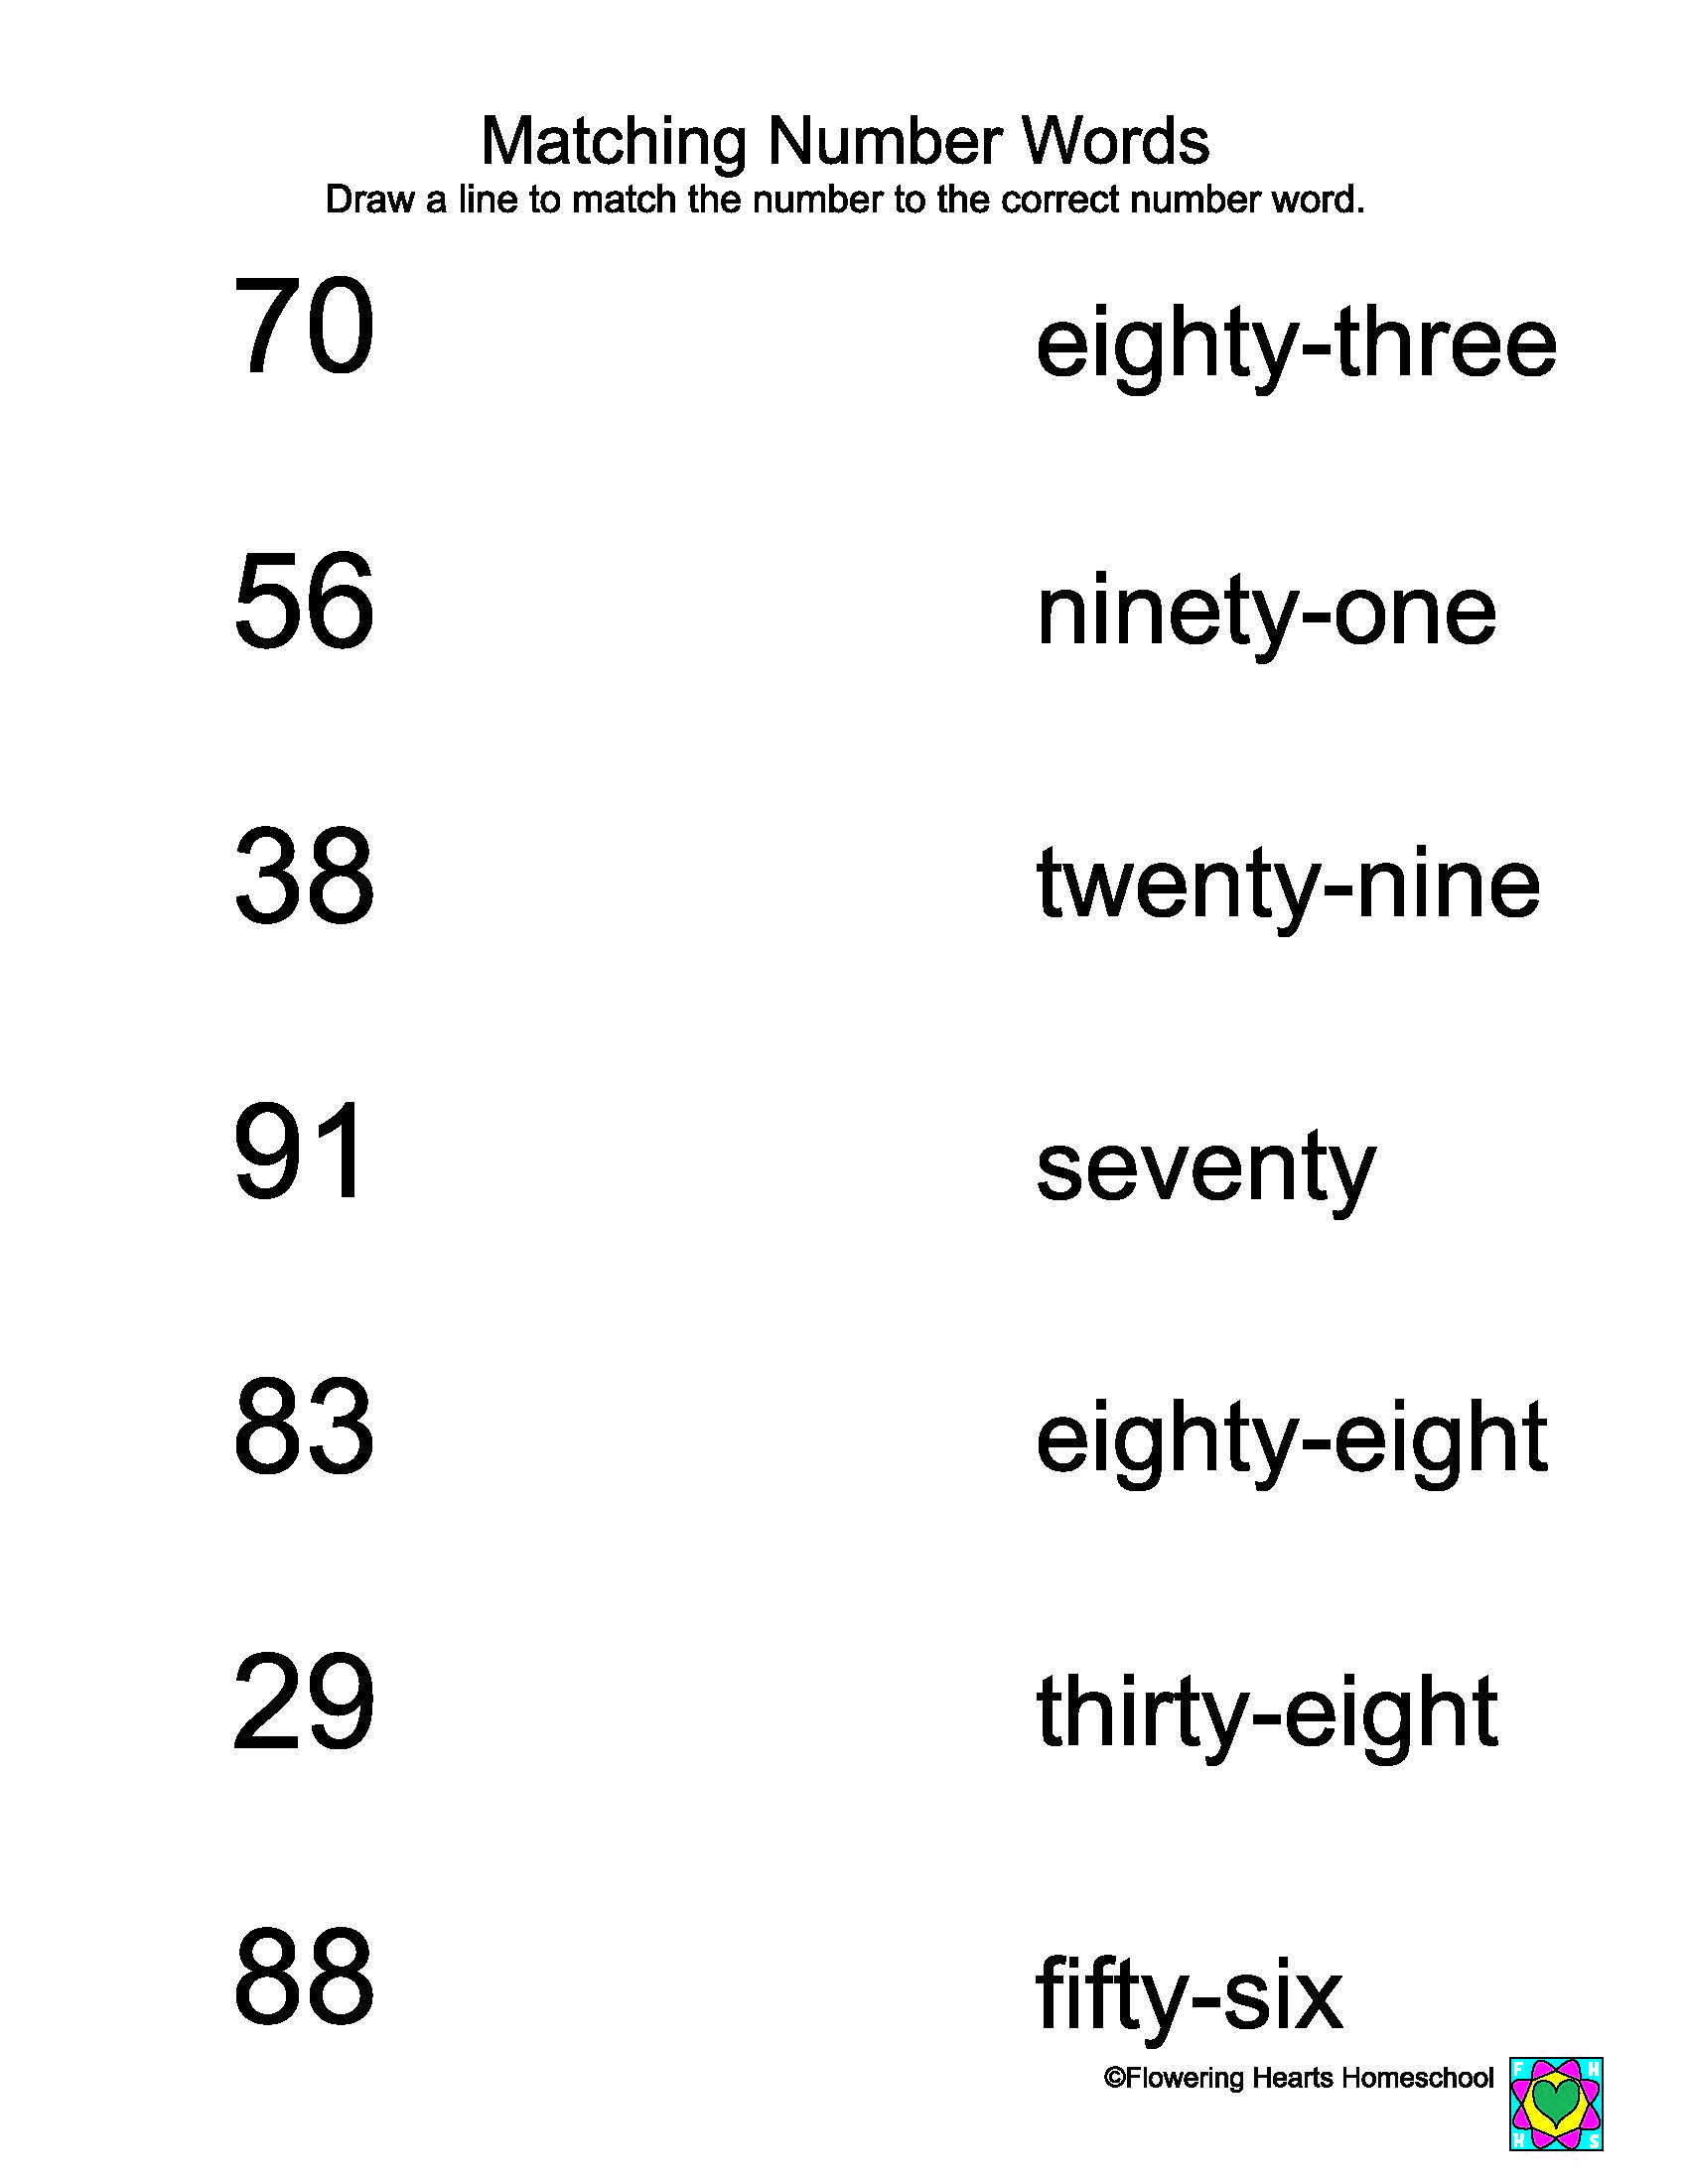 Matching Numbers to Words Worksheets Image Result for Number Word Worksheets